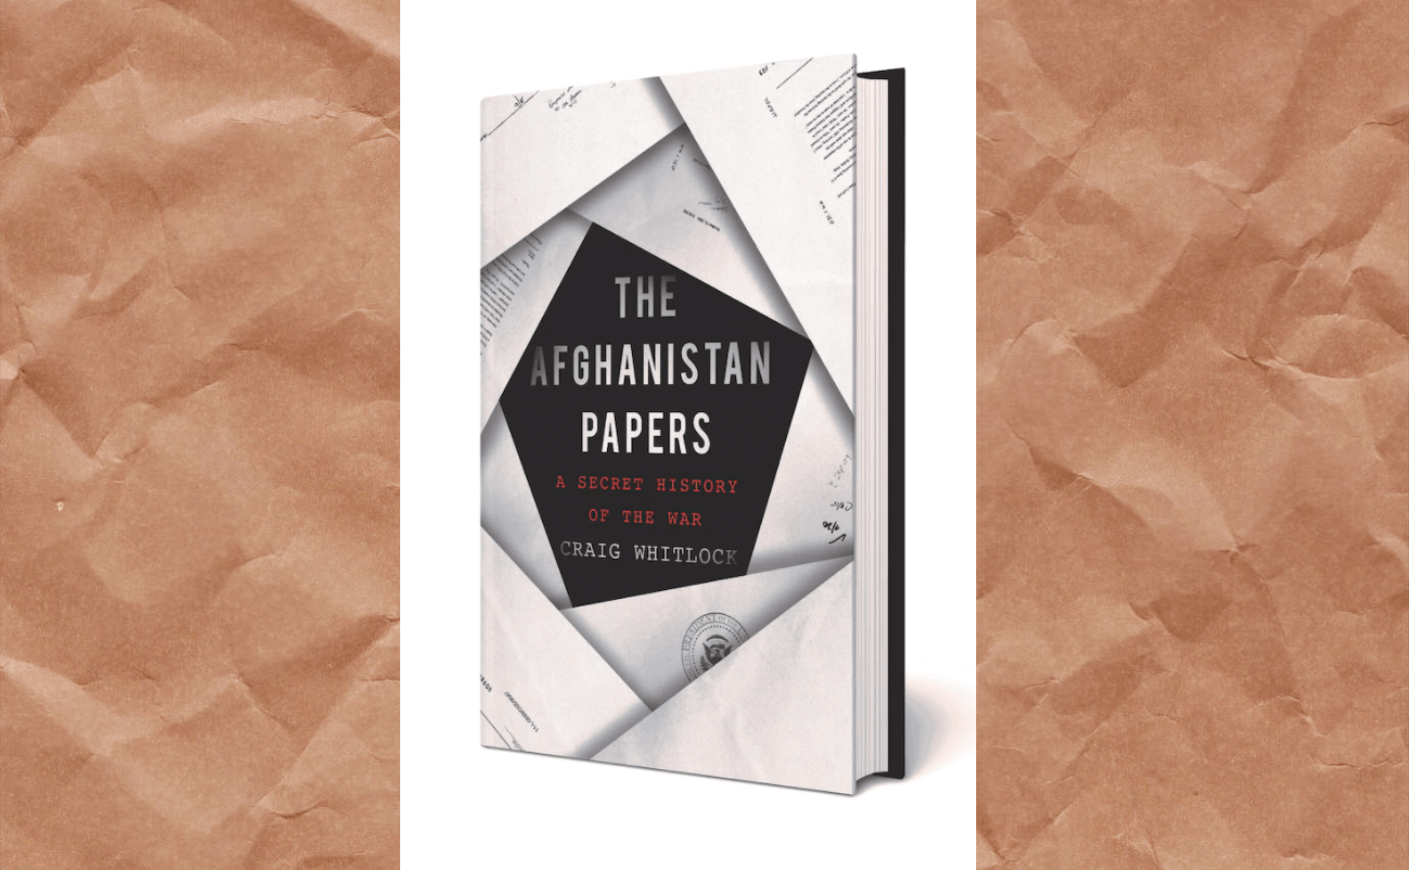 The Afghanistan Papers book